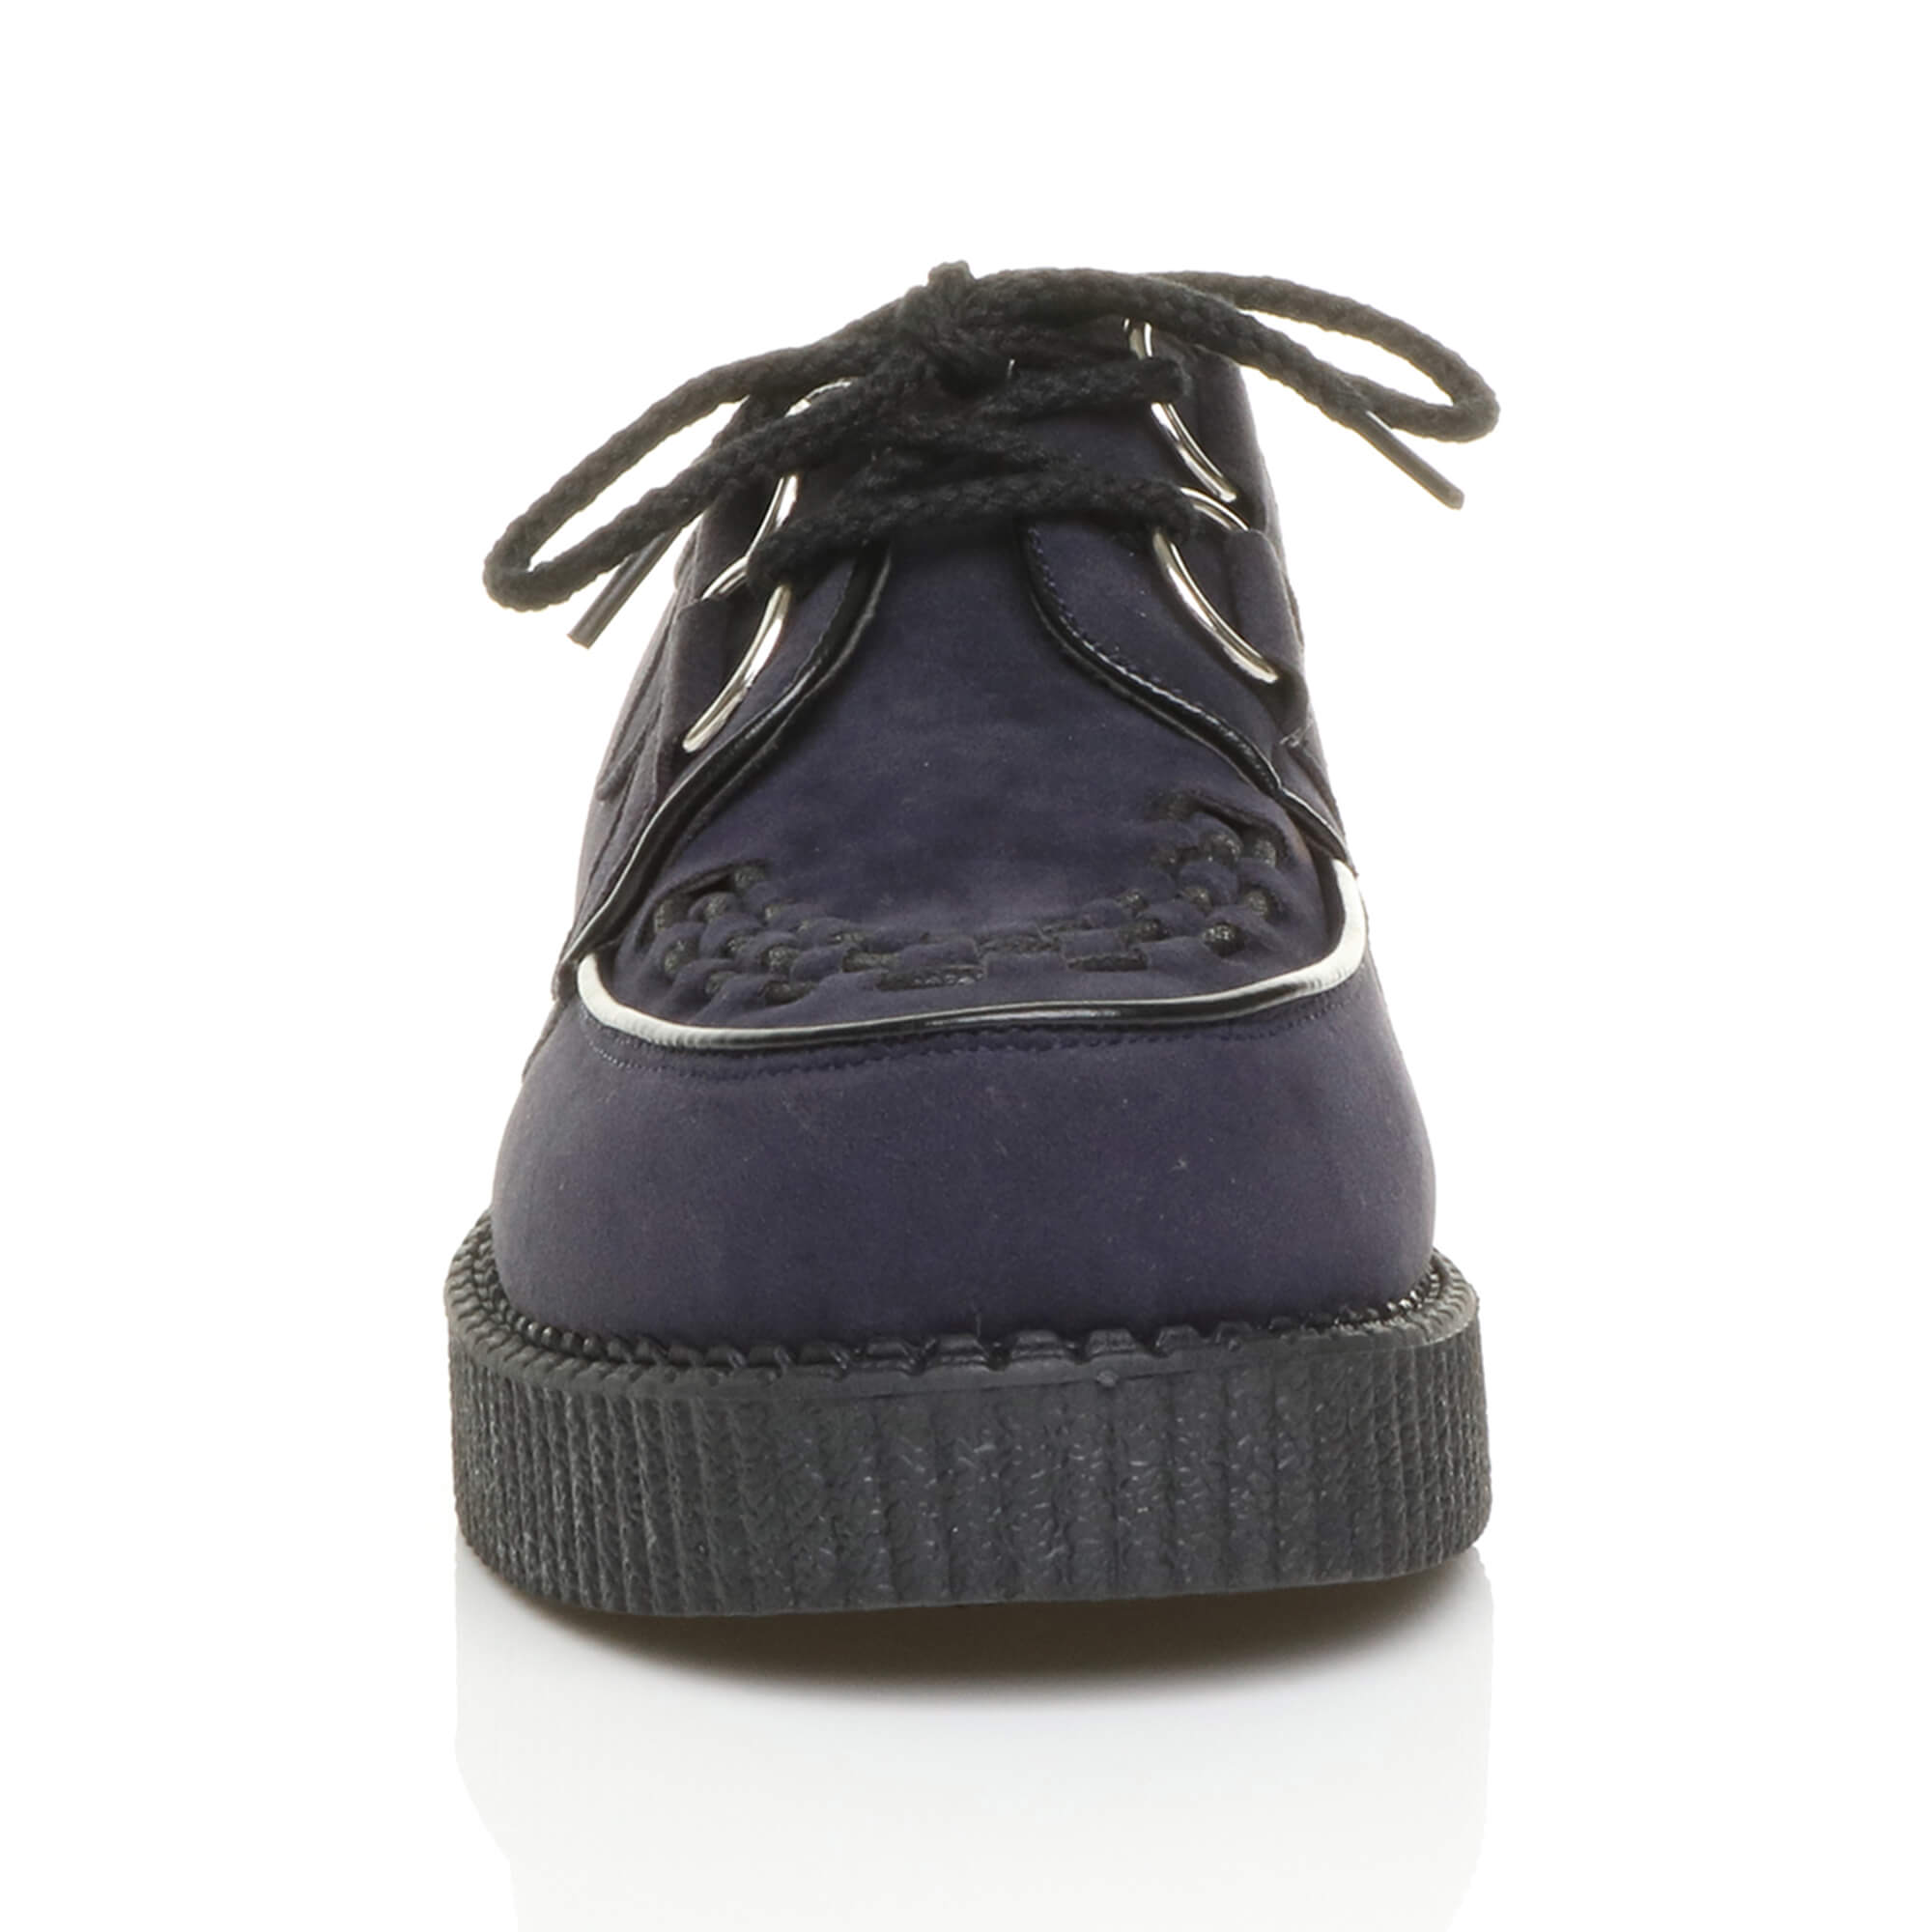 MENS-PLATFORM-WEDGE-LACE-UP-GOTH-PUNK-BROTHEL-CREEPERS-BEETLE-CRUSHERS-SHOES thumbnail 41